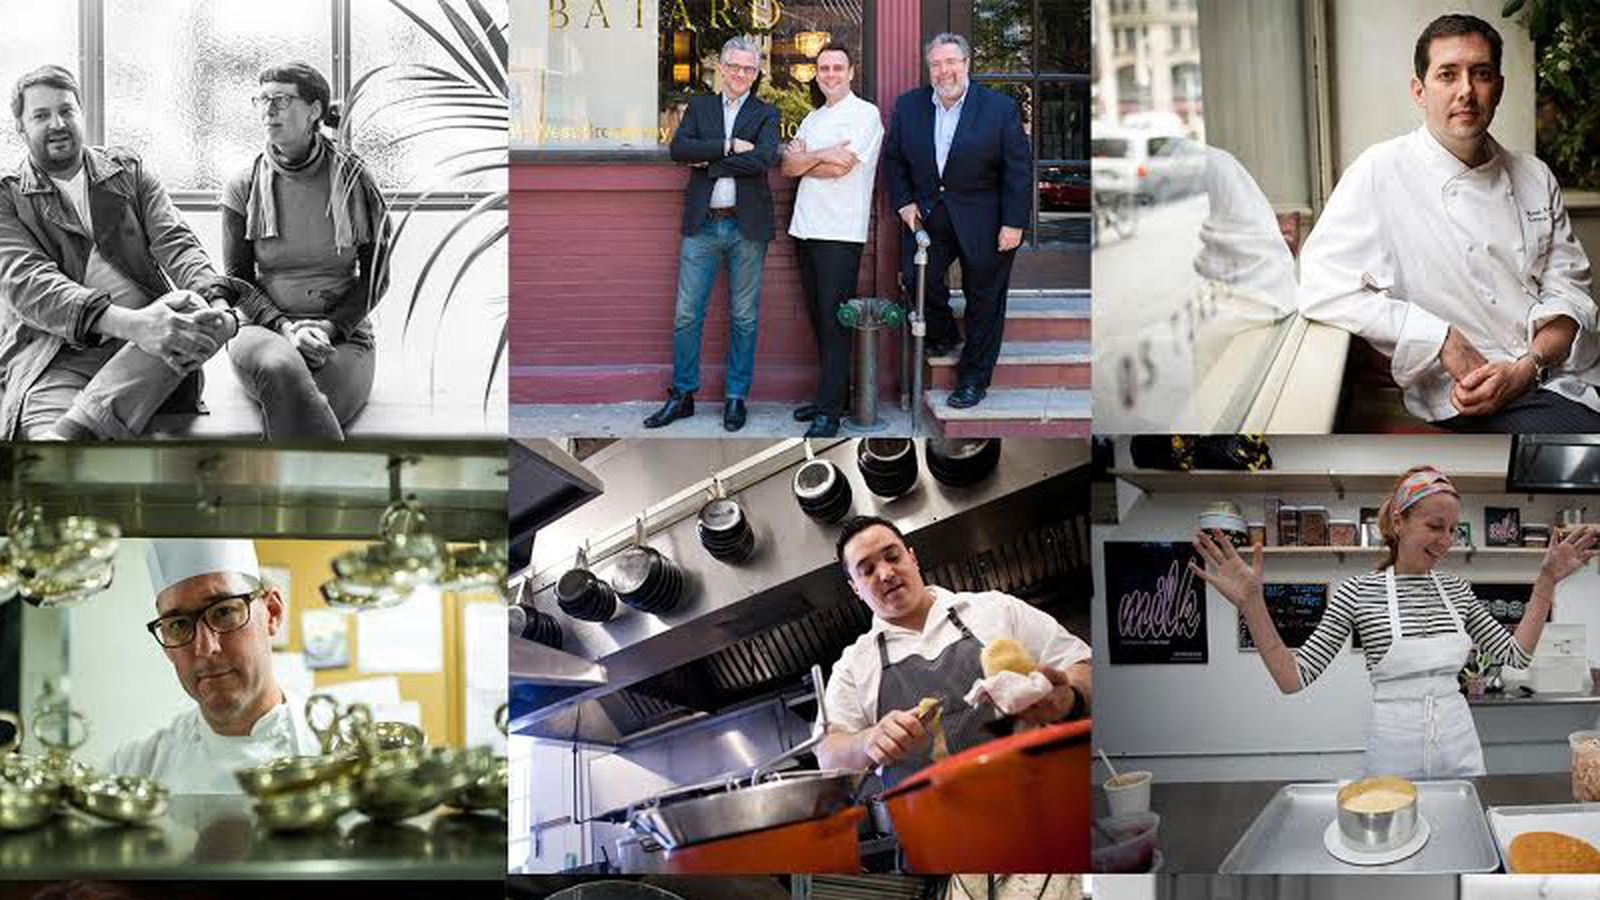 James Beard Awards 2015 Winners: You Can Take the Beards Out of New York...